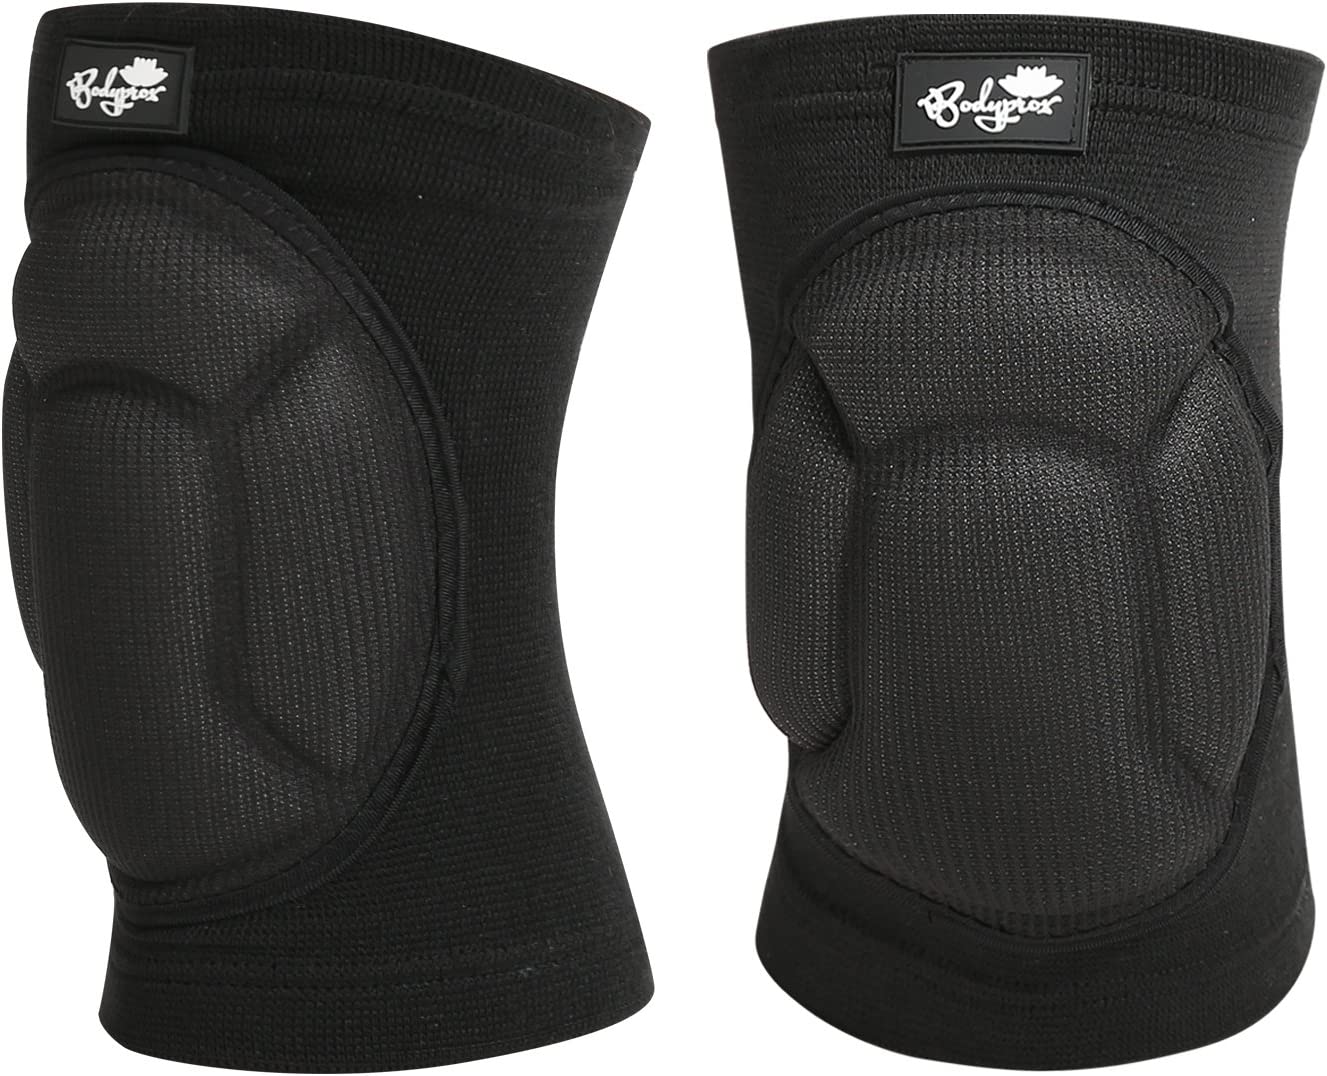 Bodyprox Protective Knee Pads, Thick Sponge Anti-Slip, Collision Avoidance Knee Sleeve : Sports & Outdoors